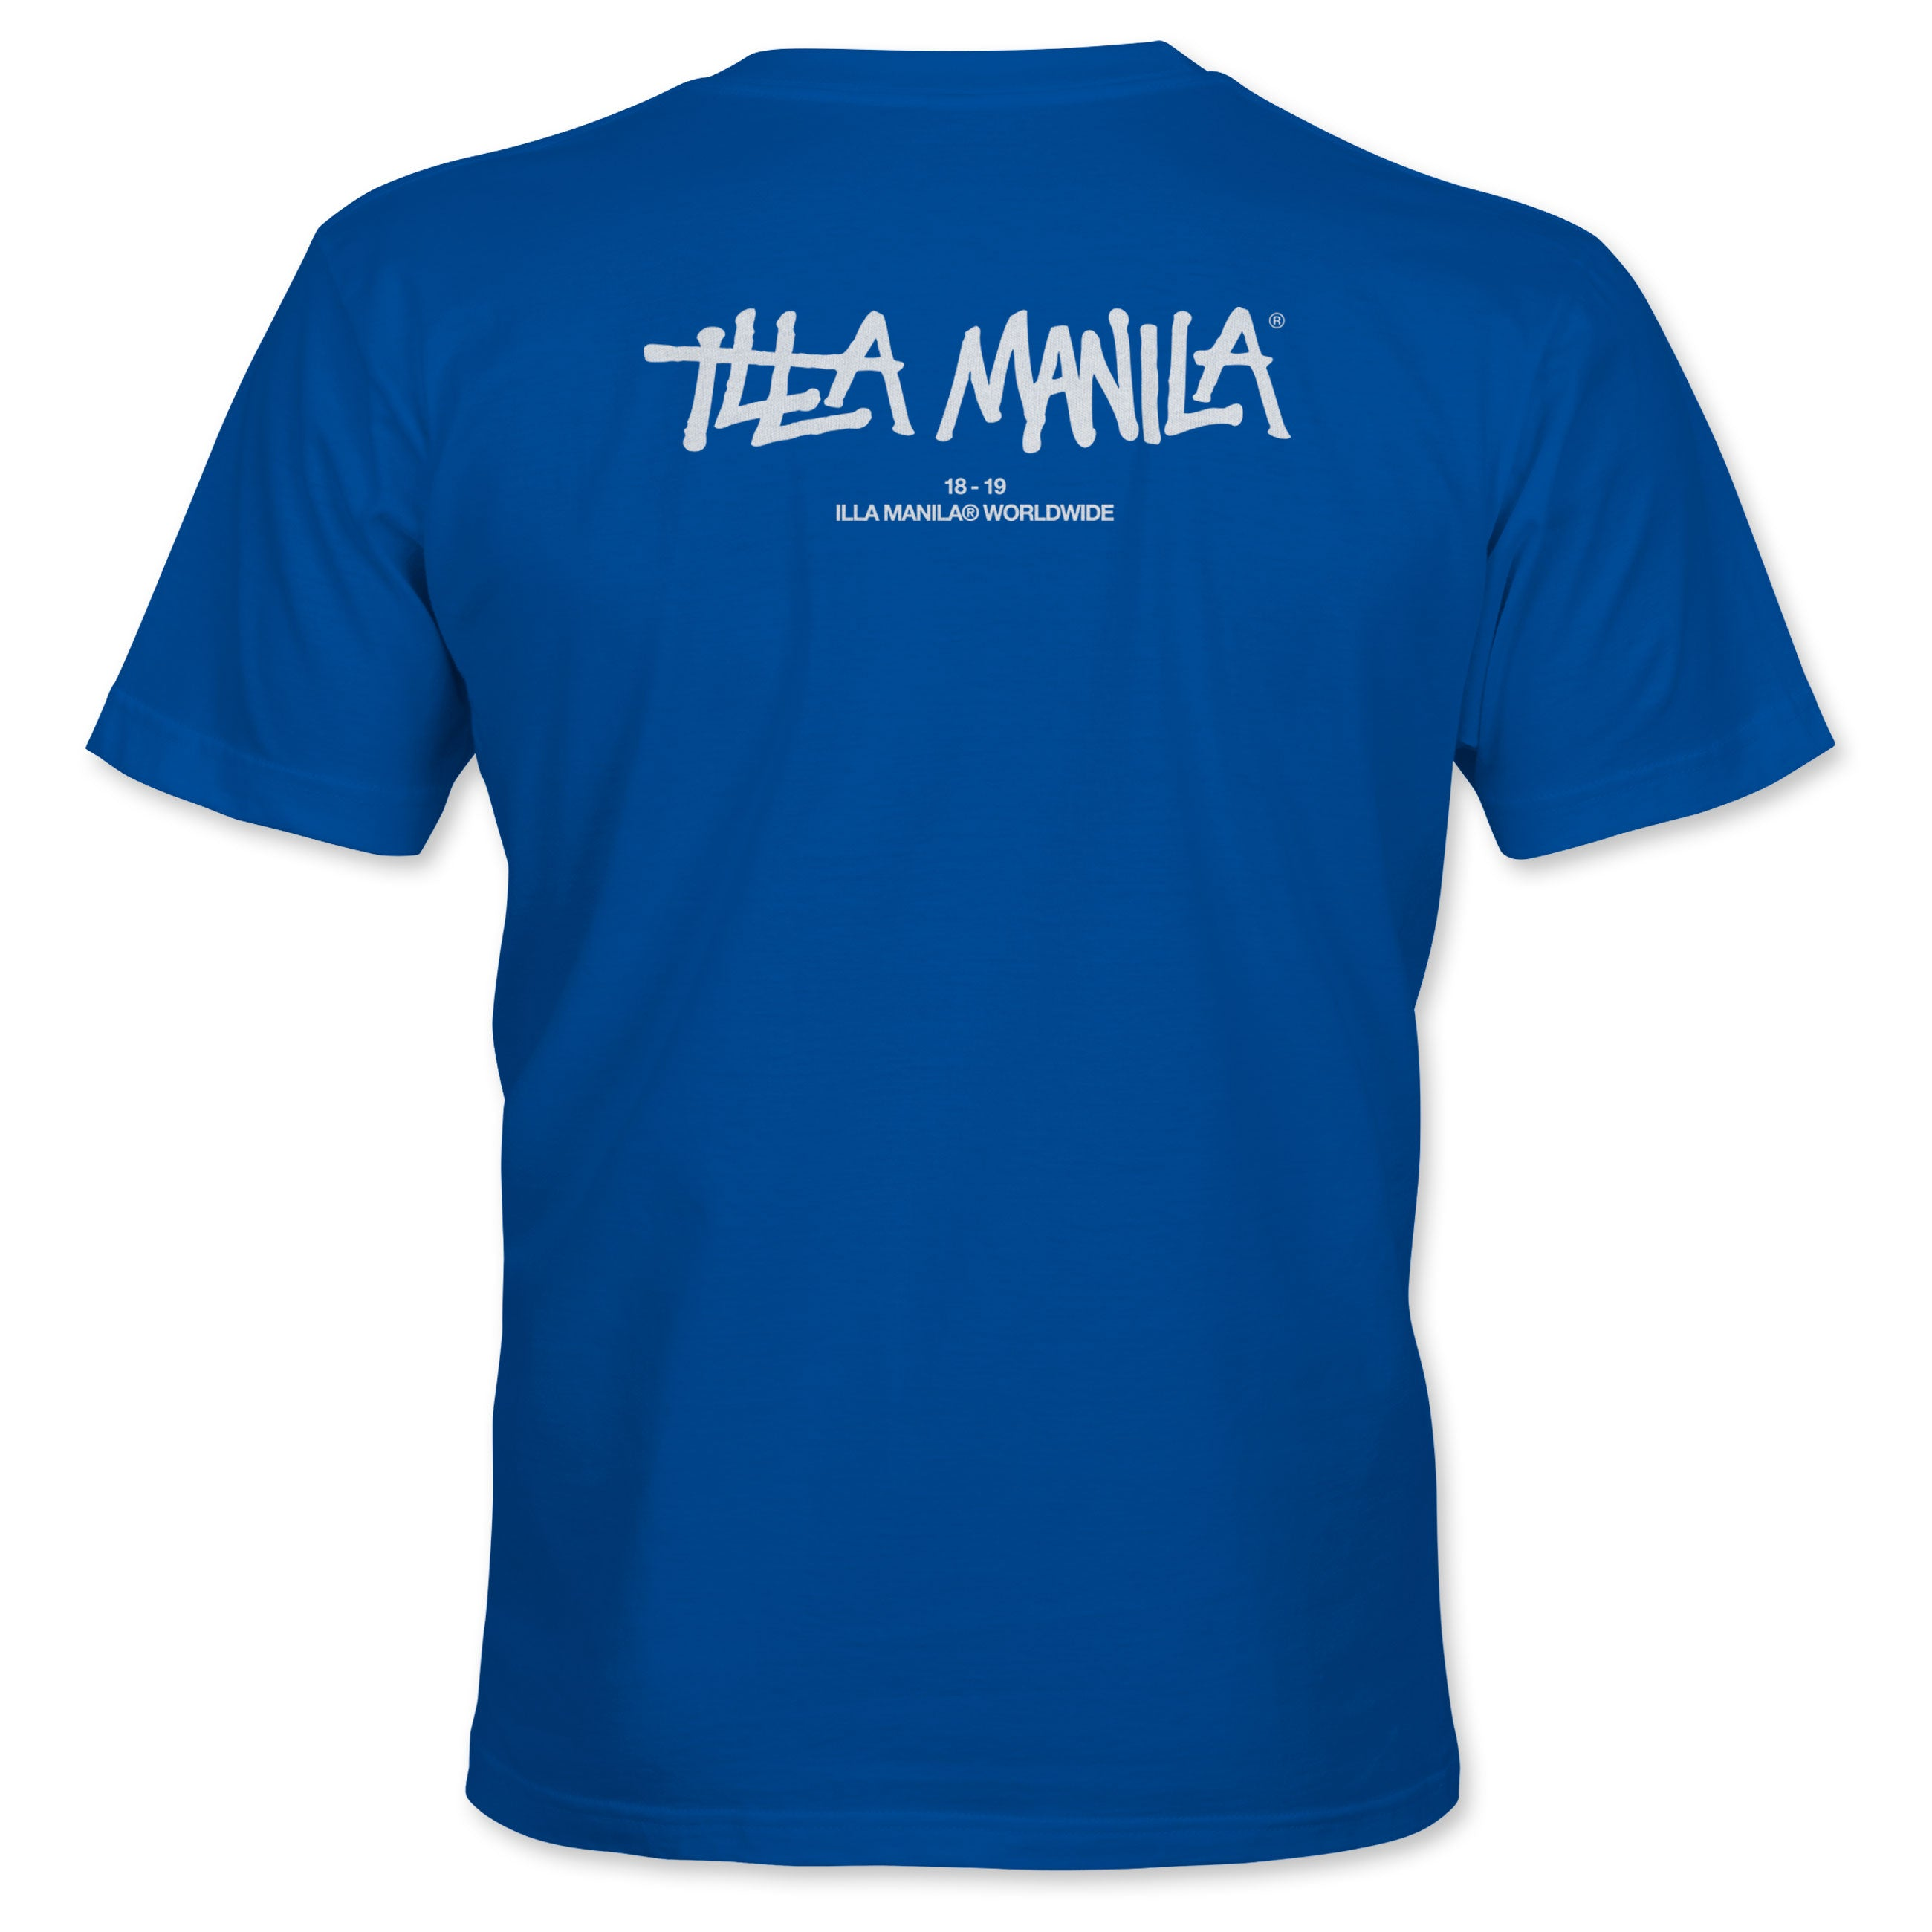 ILLA Logo Worldwide T-shirt - Royal Blue